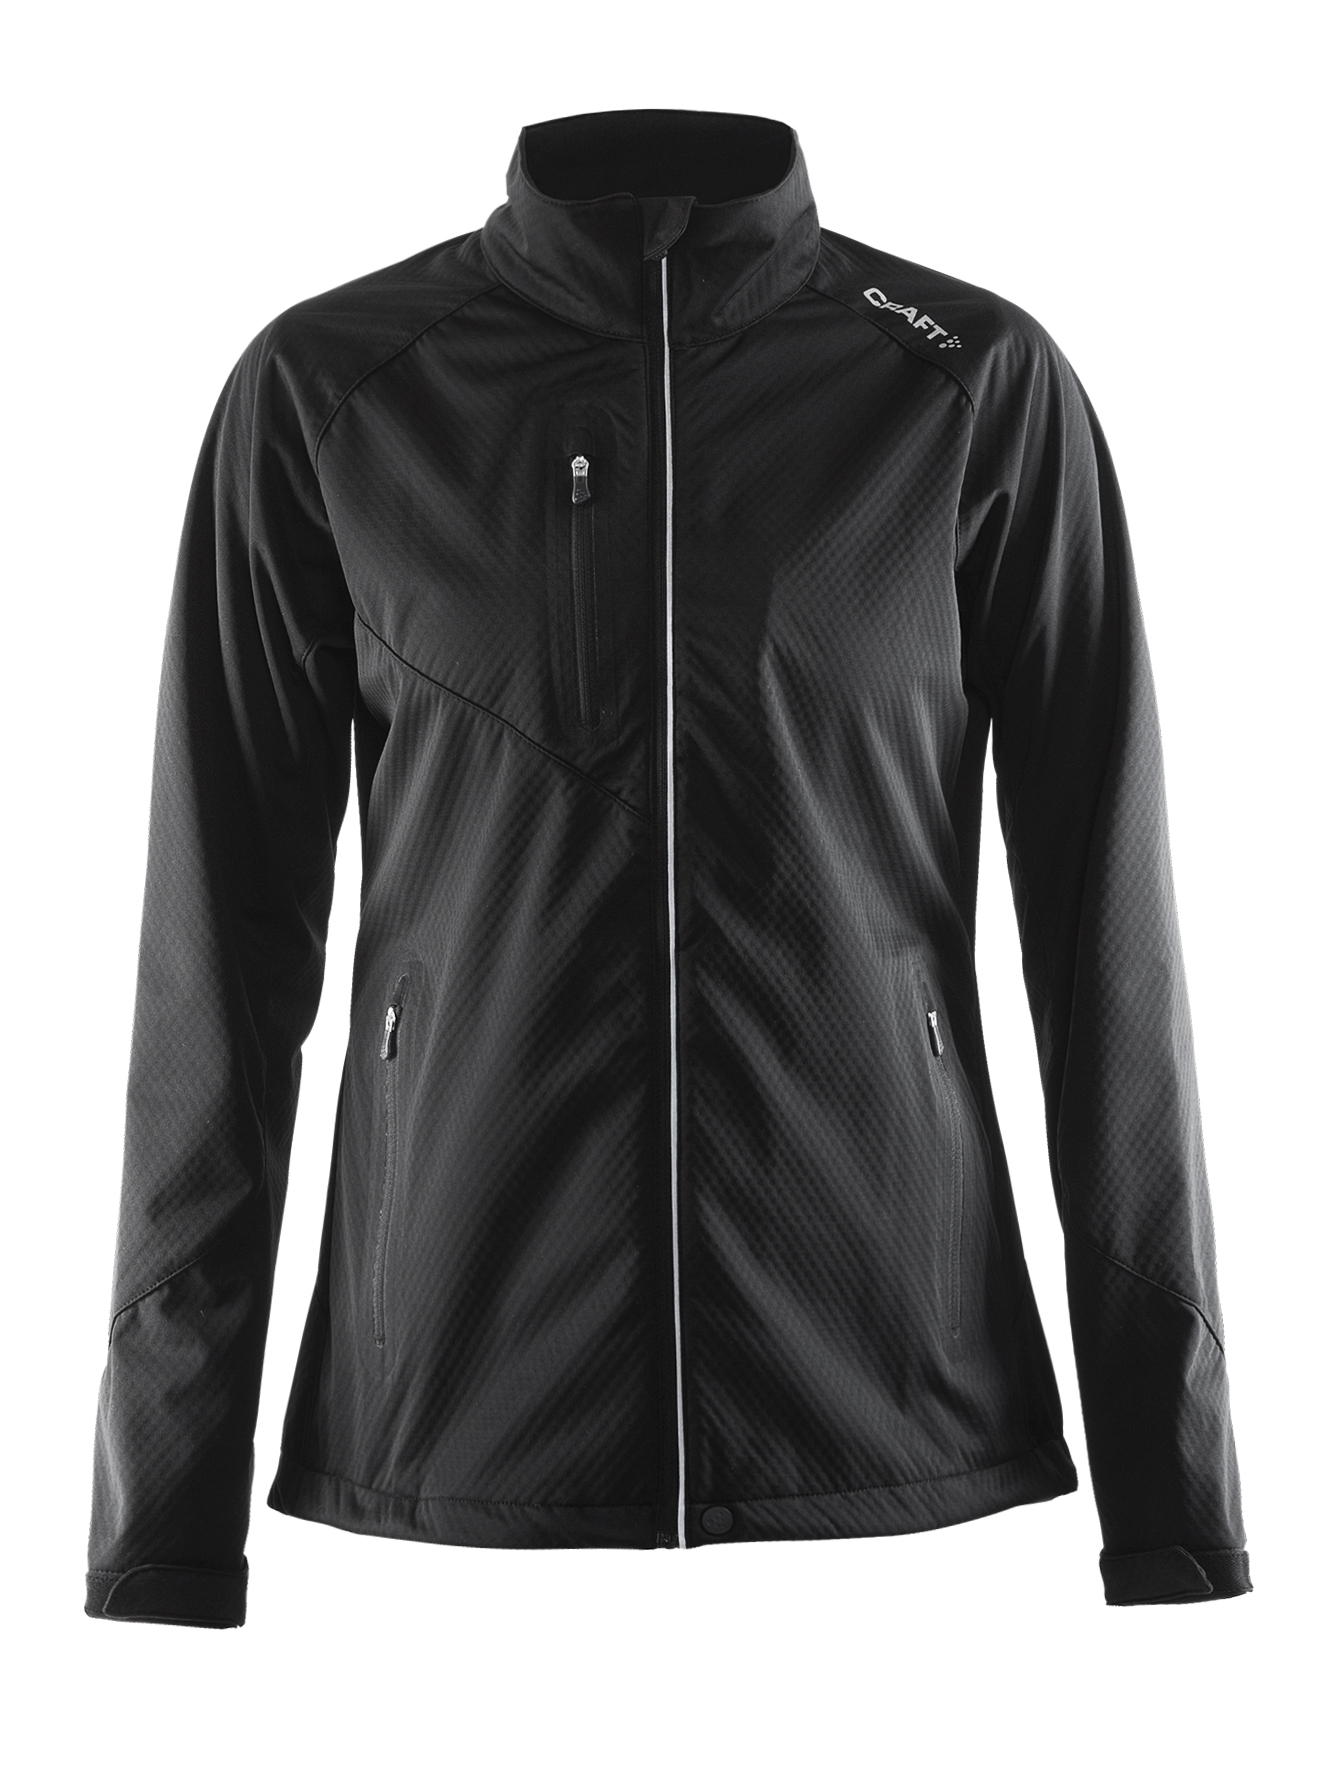 Craft Bormio Softshell Jacket women black xxl black